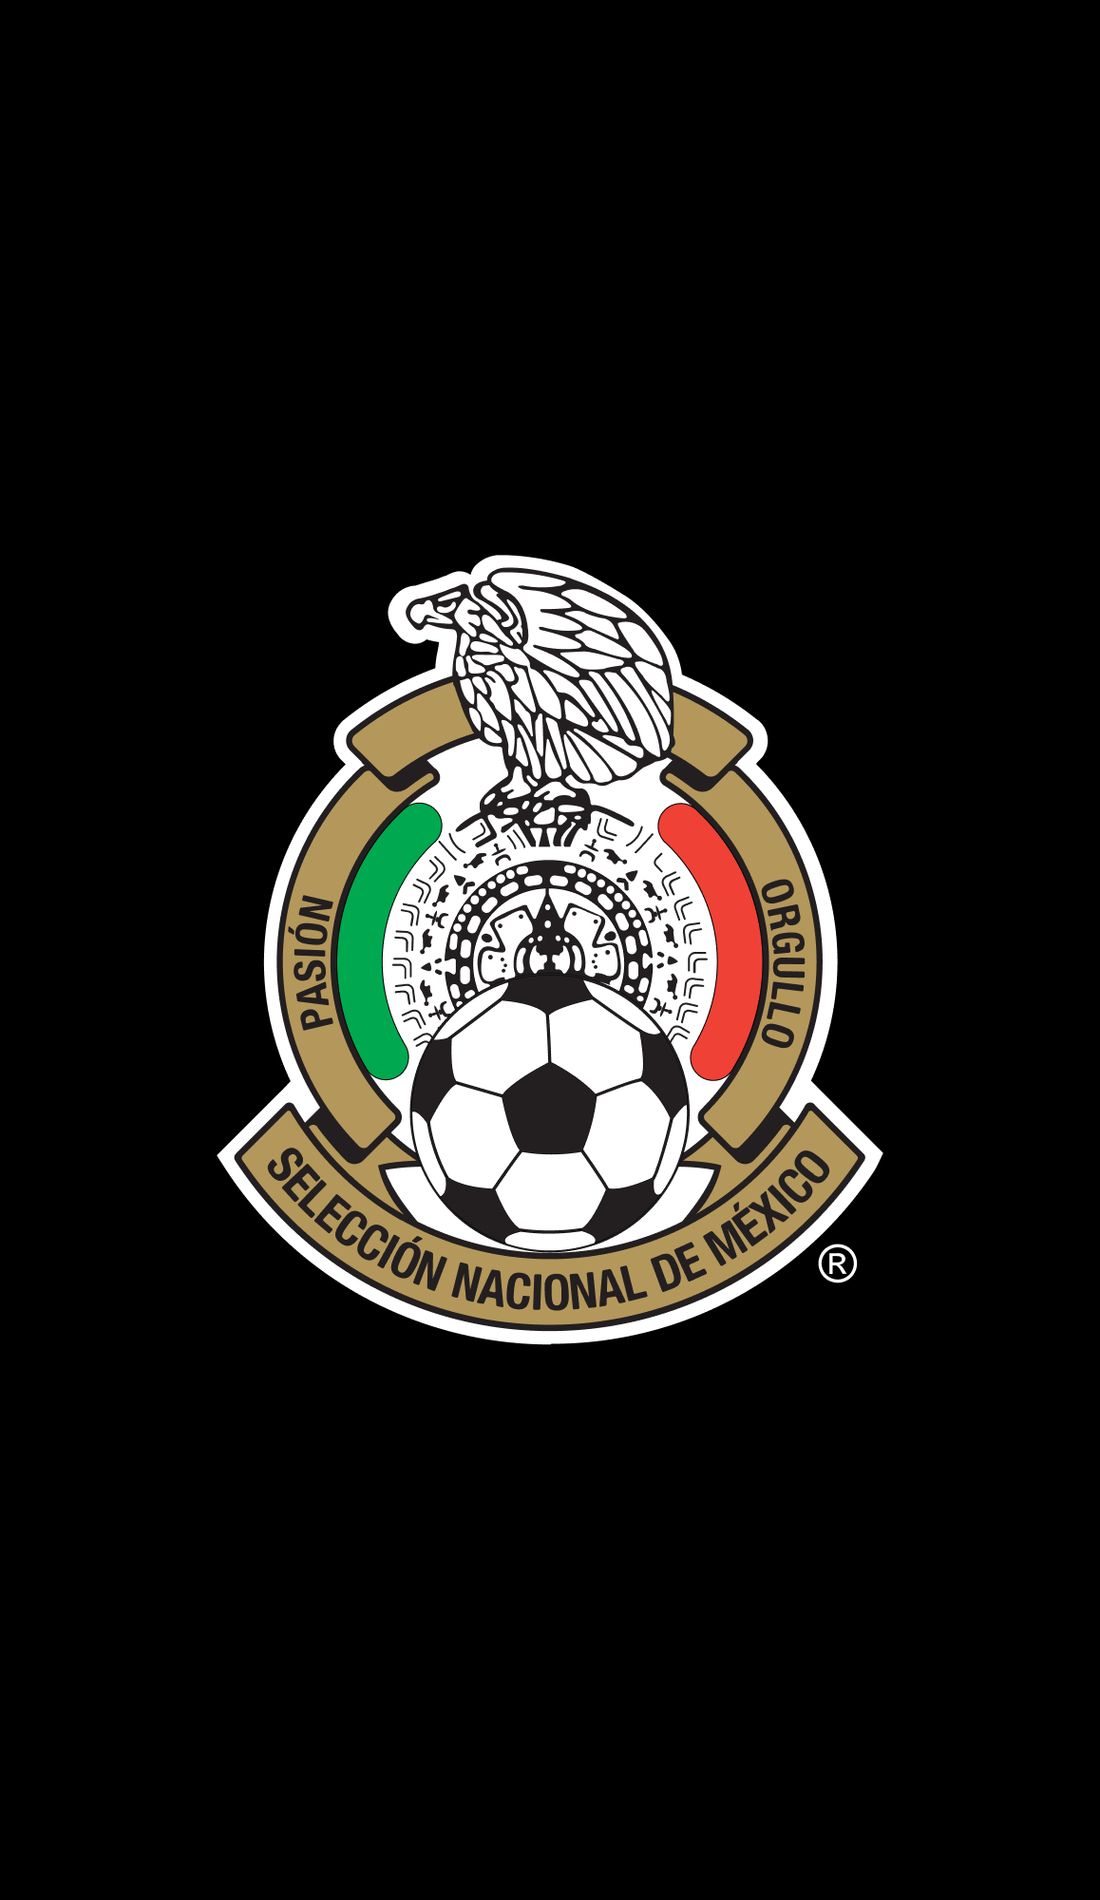 A Mexican National Team live event